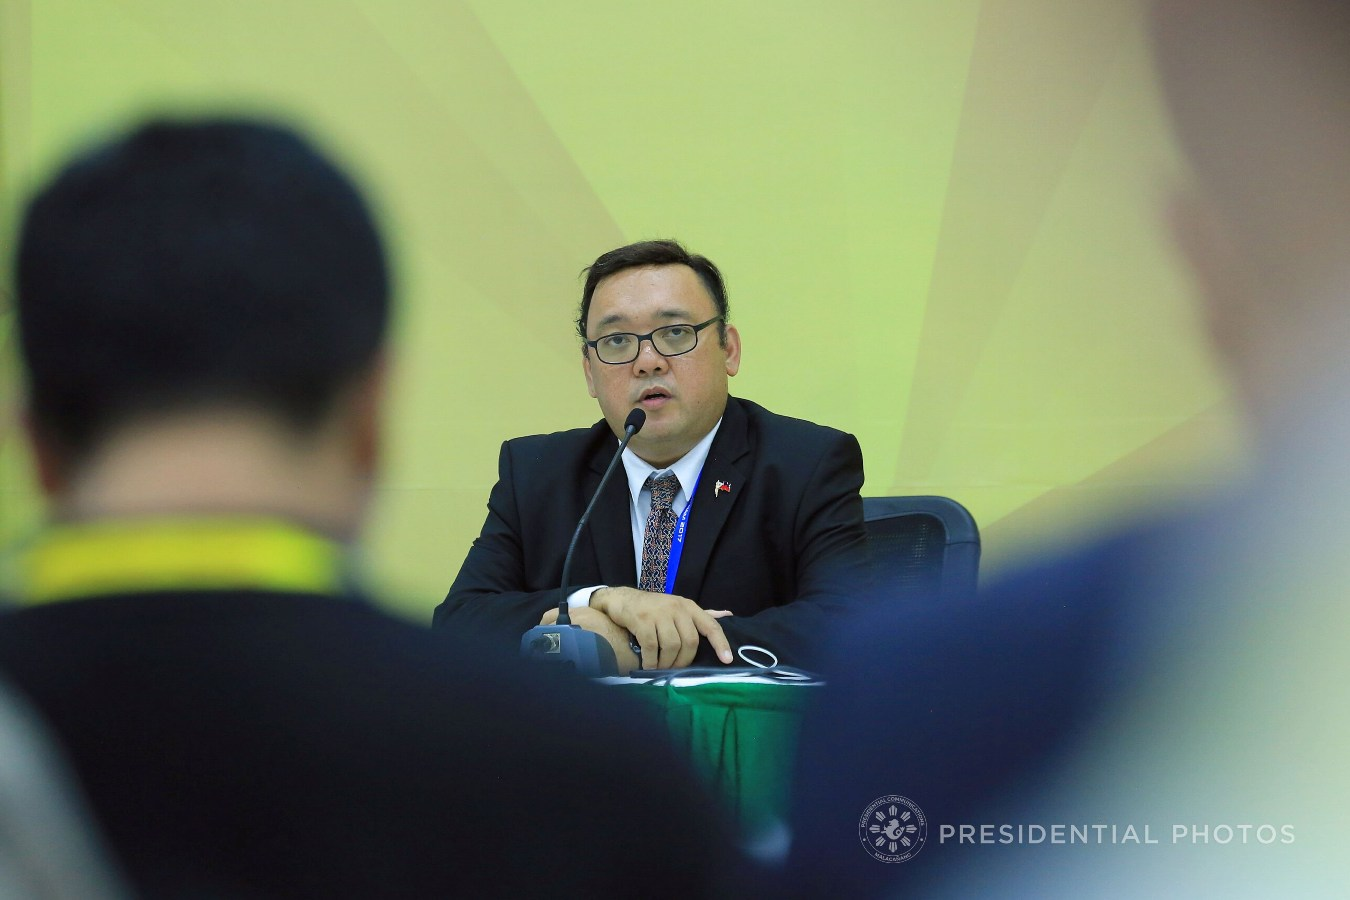 FILE: Following the termination of peace talks between the Philippine government and the Communist Party of the Philippines-New People's Army-National Democratic Front (CPP-NPA-NDF), Presidential Spokesperson Harry Roque on Tuesday reiterated that the ball is now in the Left's court for any possible revival of negotiations. (PCOO PHOTO)